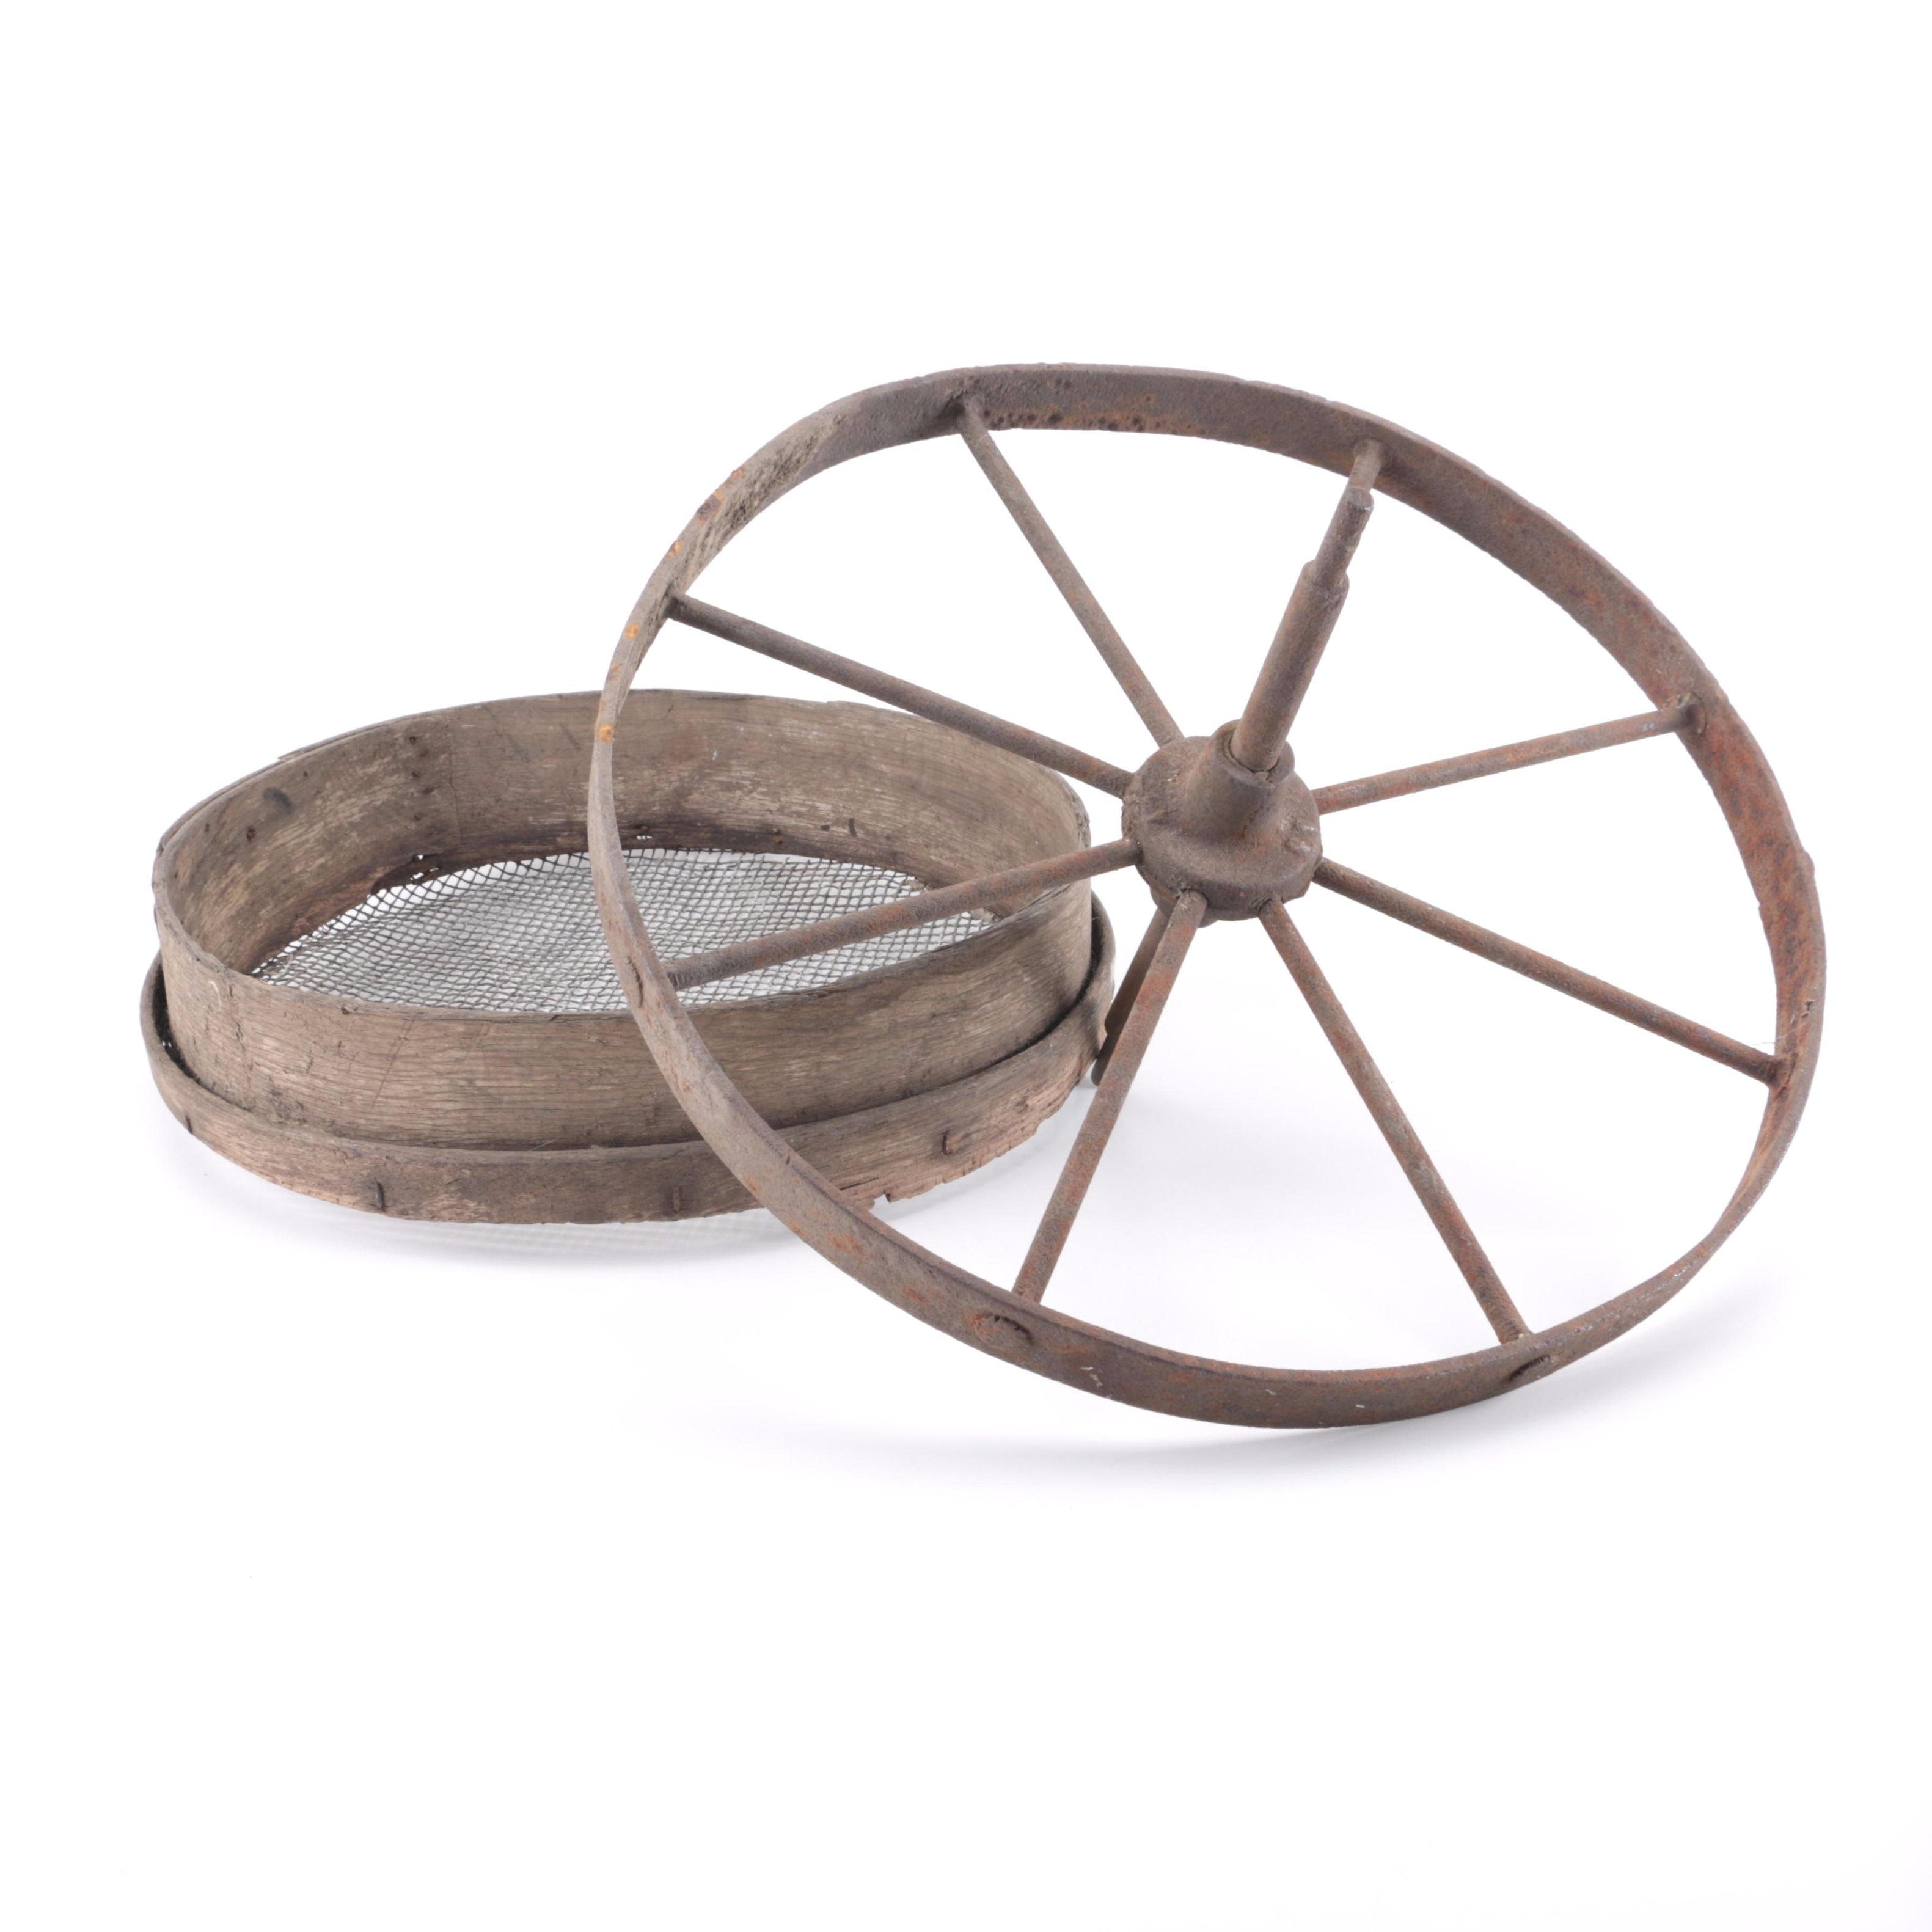 Antique Iron Wagon Wheel and Sifter